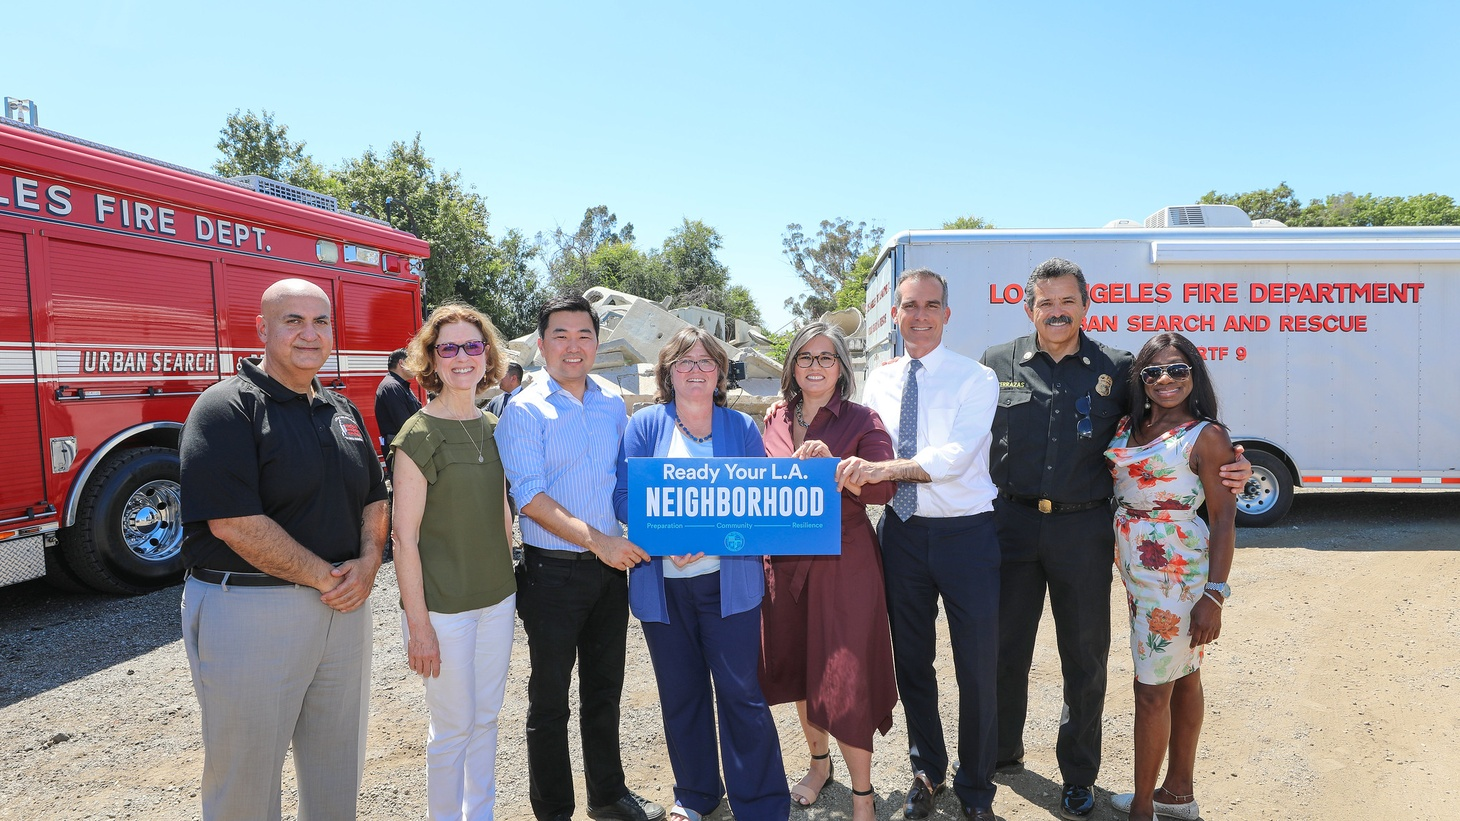 Mayor Garcetti has launched a new initiative to strengthen emergency preparedness in L.A. neighborhoods. It's called Ready Your L.A. Neighborhood.